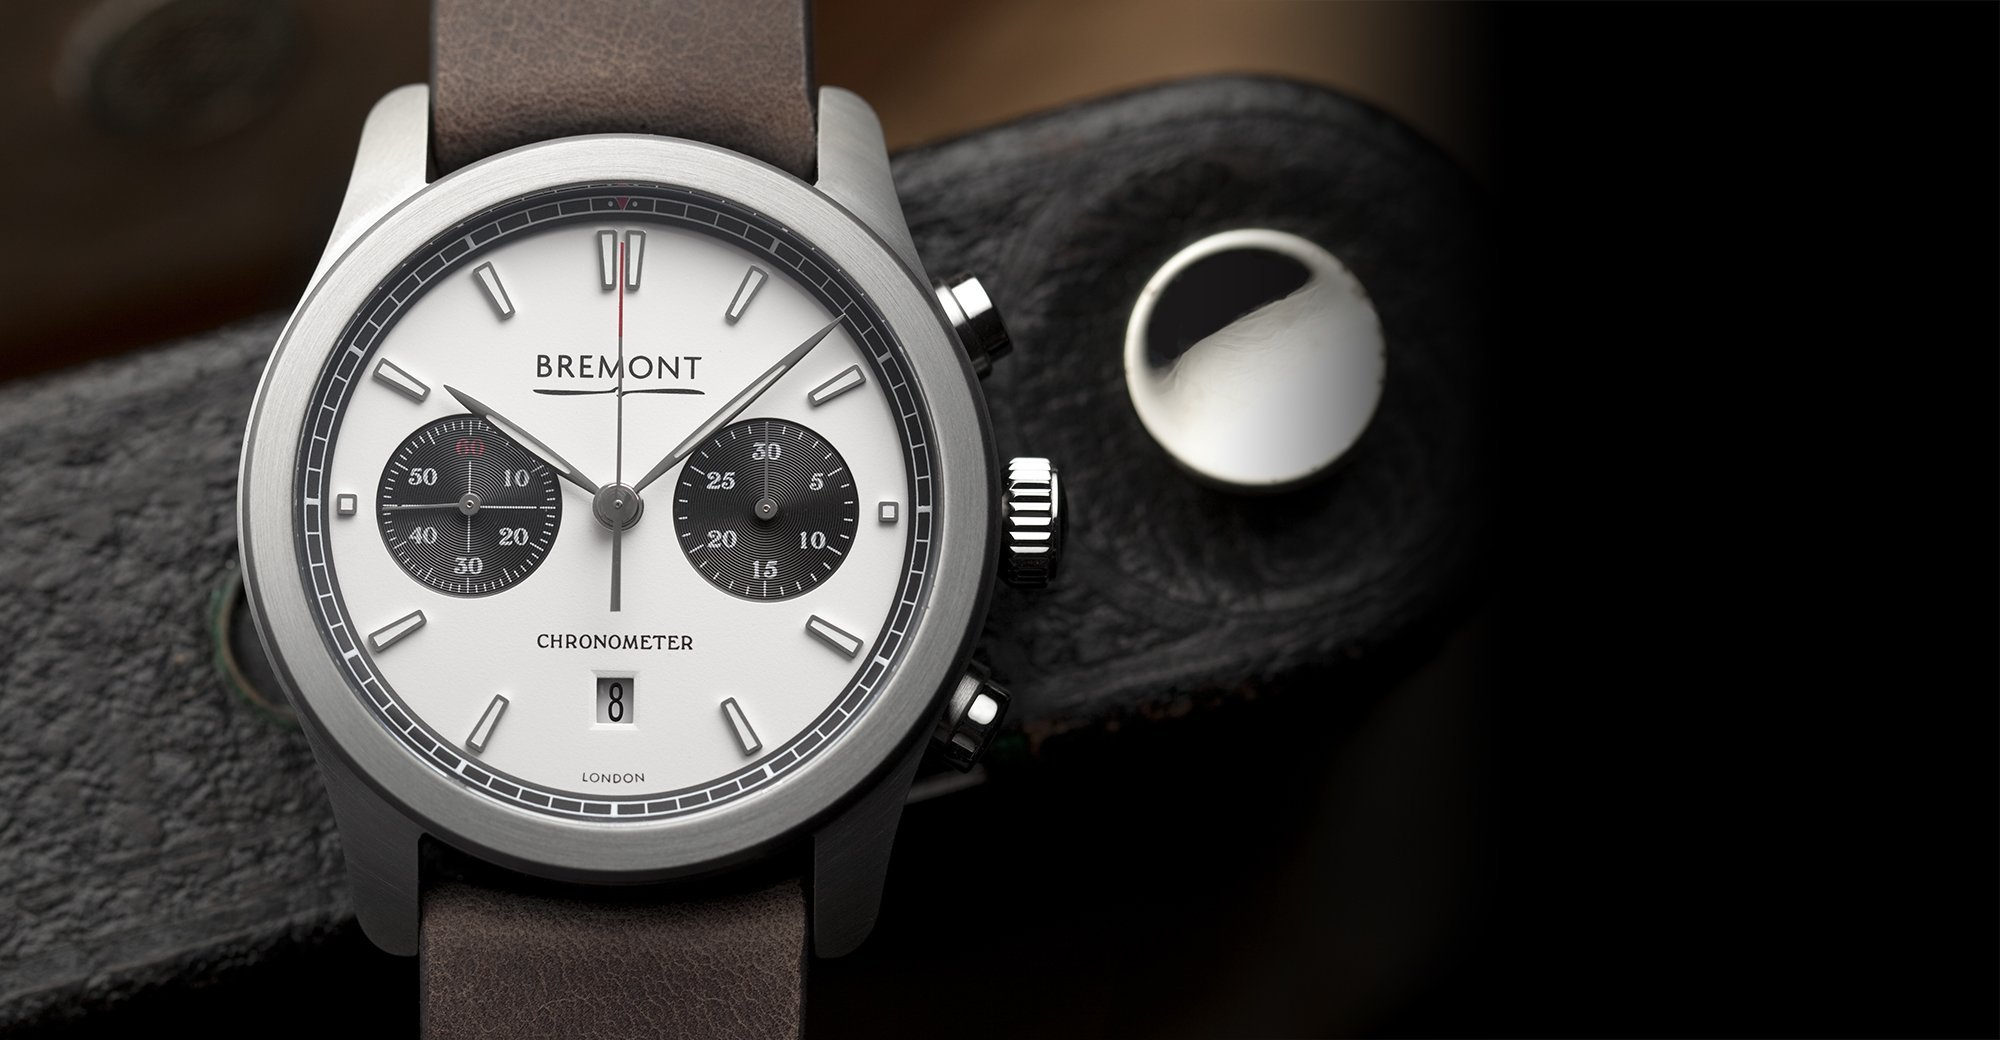 Bremont is one of the most important watch manufacturers in Europe